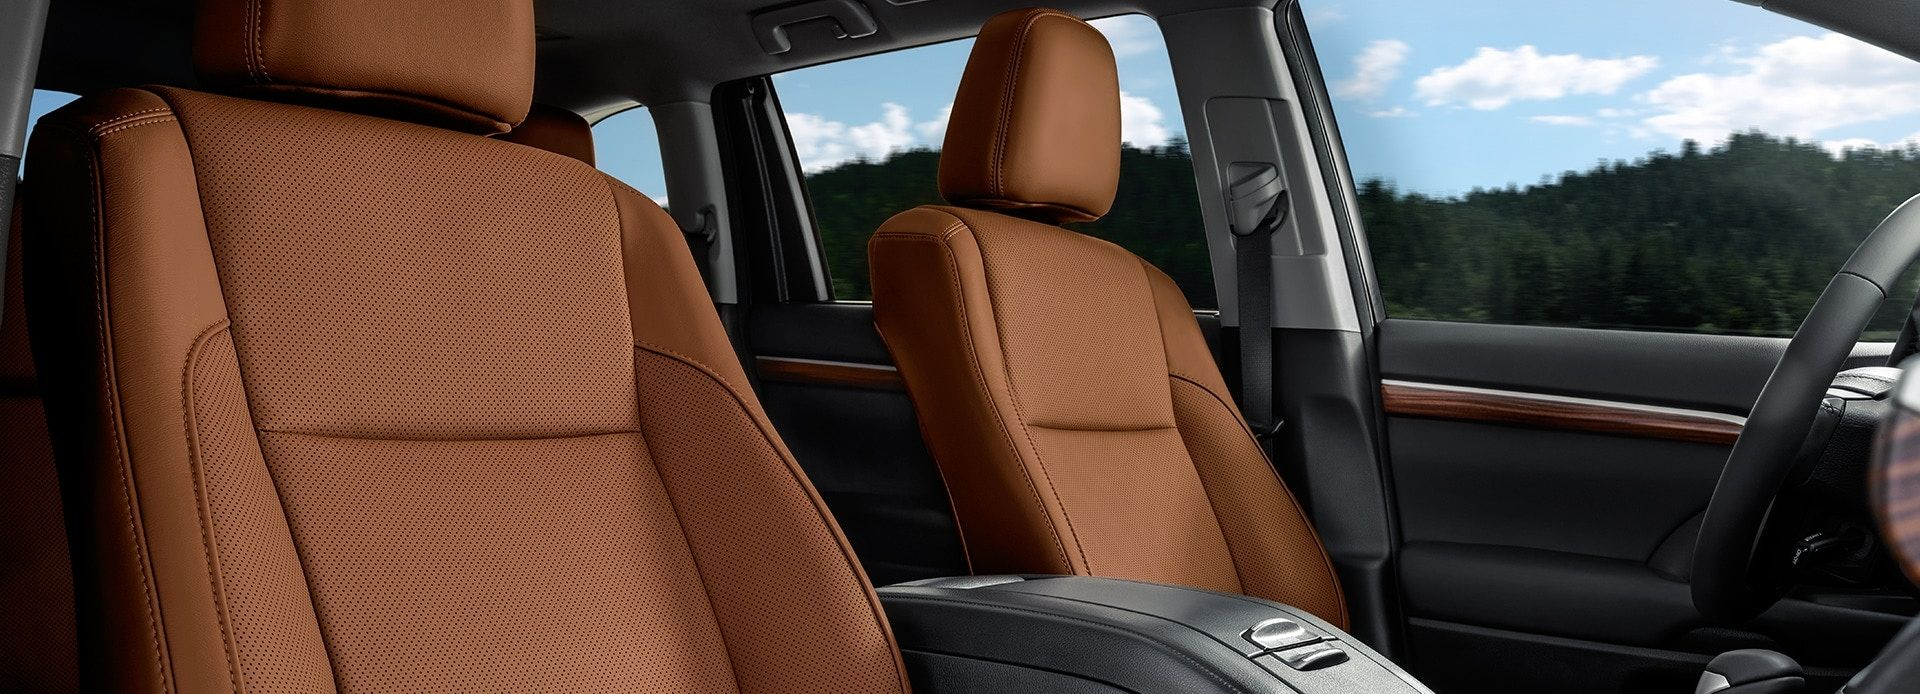 Luxurious Seating in the Highlander